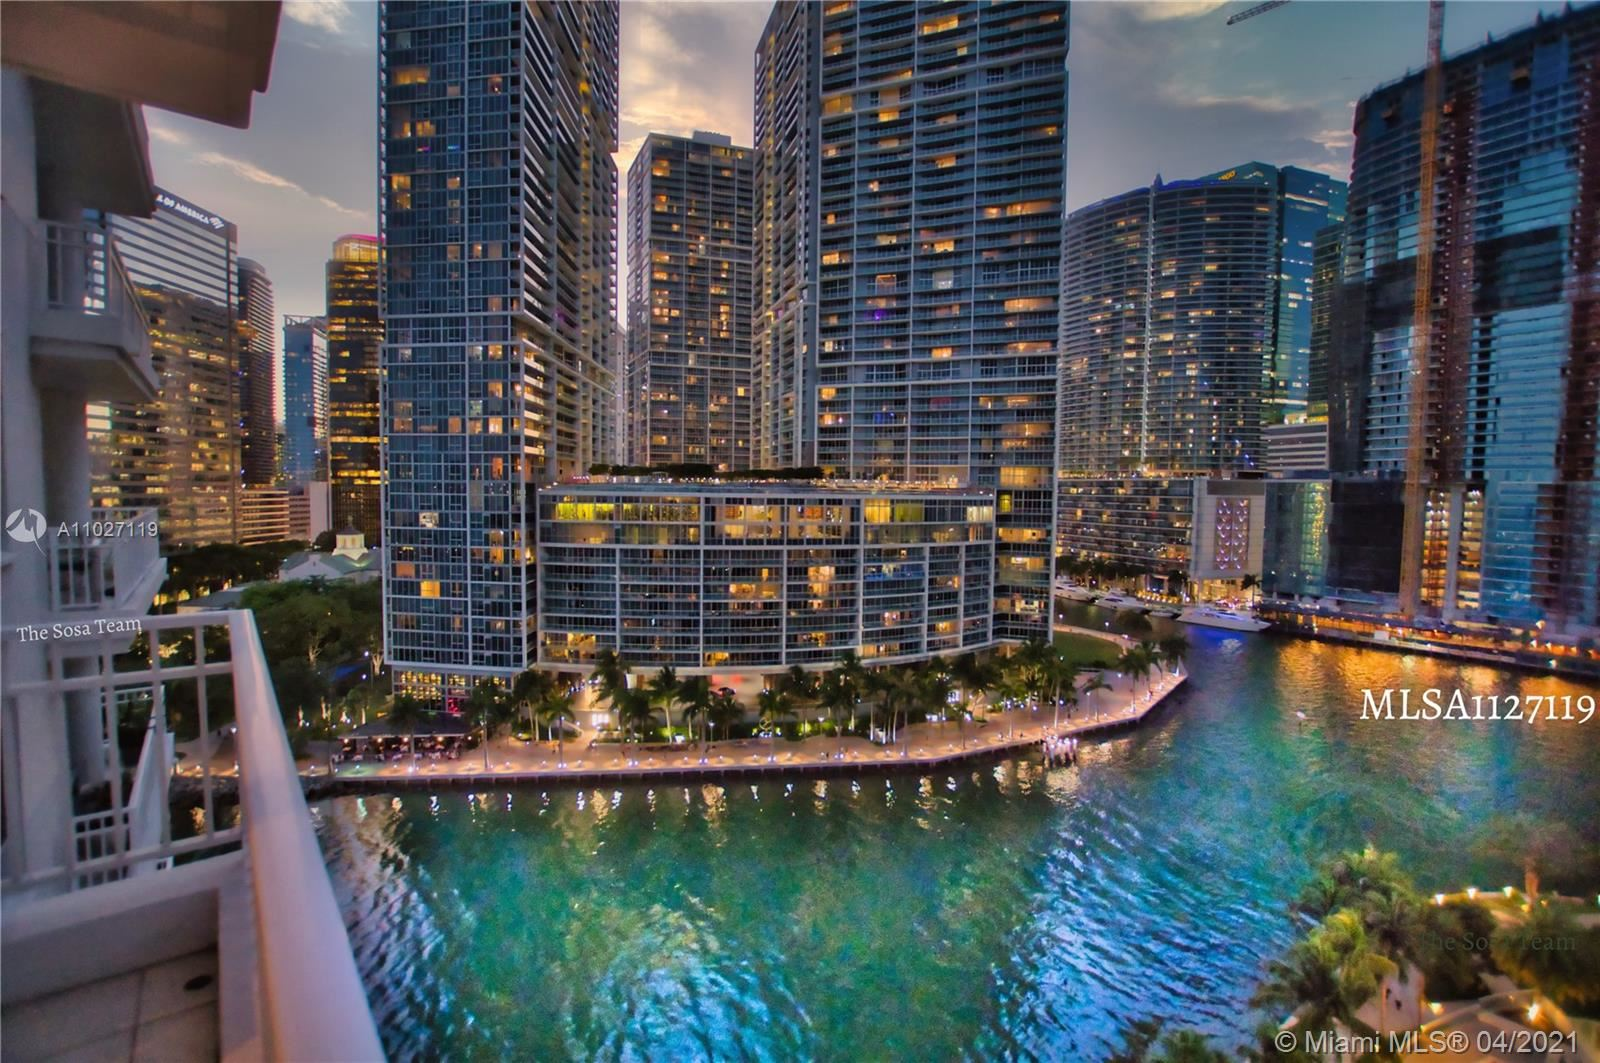 801 Brickell Key Blvd #1504, Miami, FL 33131 - #: A11027119